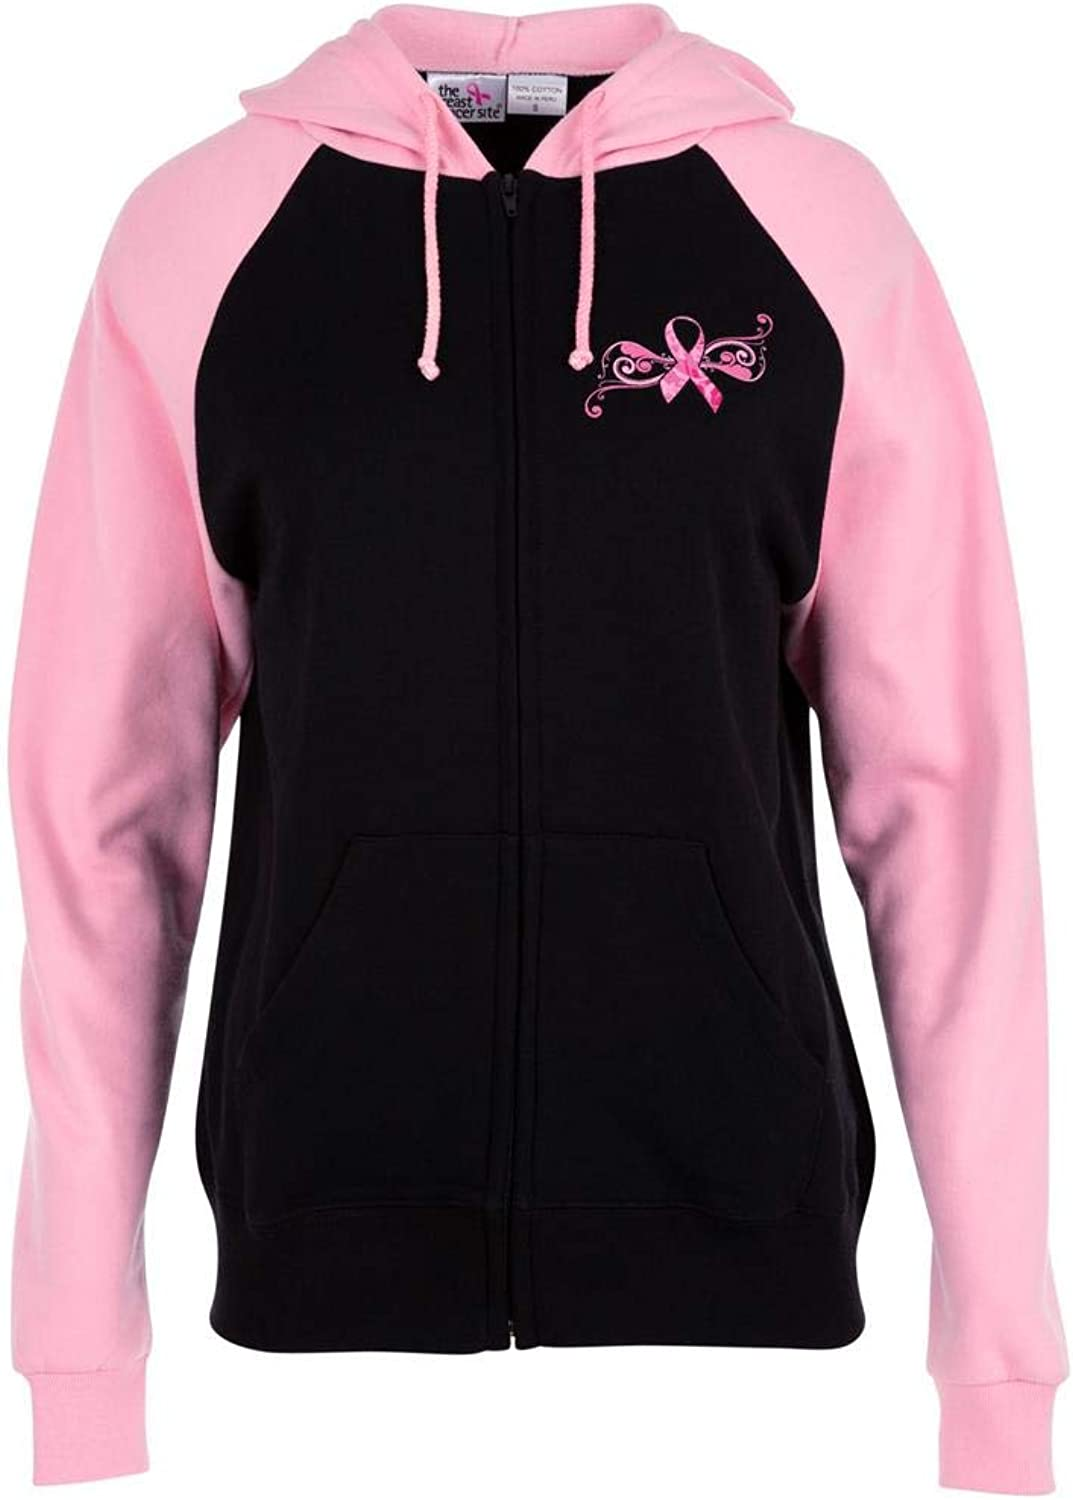 GreaterGood Pink Ribbon Butterfly TwoToned Zip Hoodie